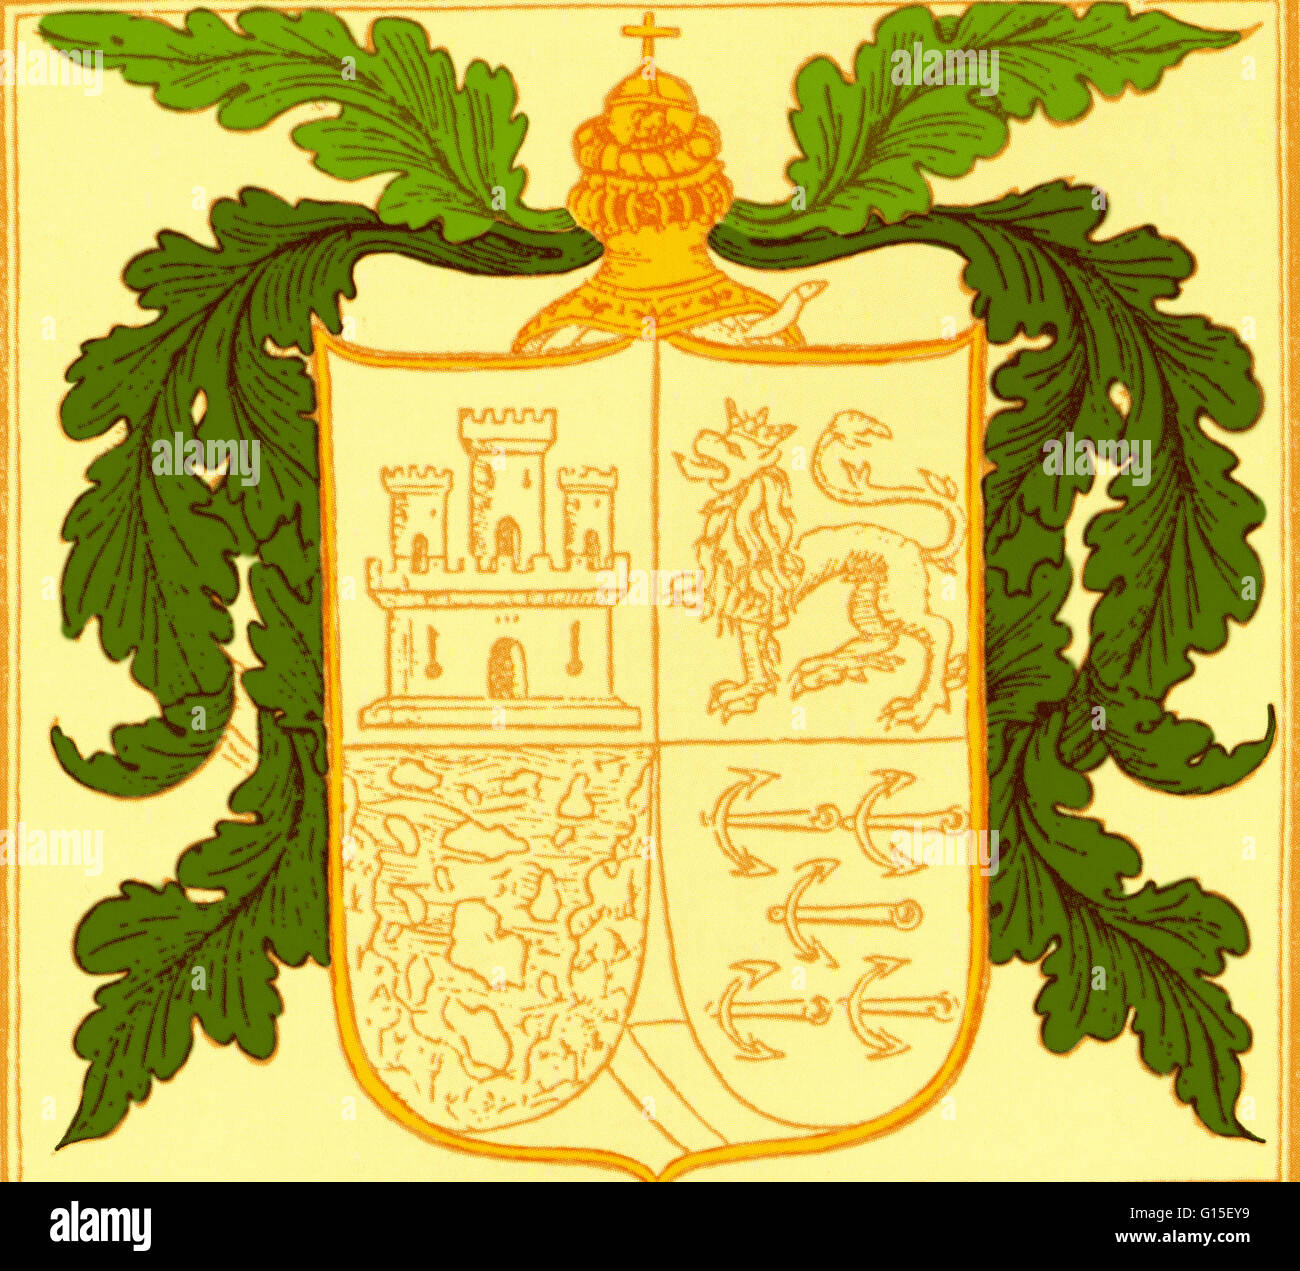 hight resolution of coat of arms of christopher columbus